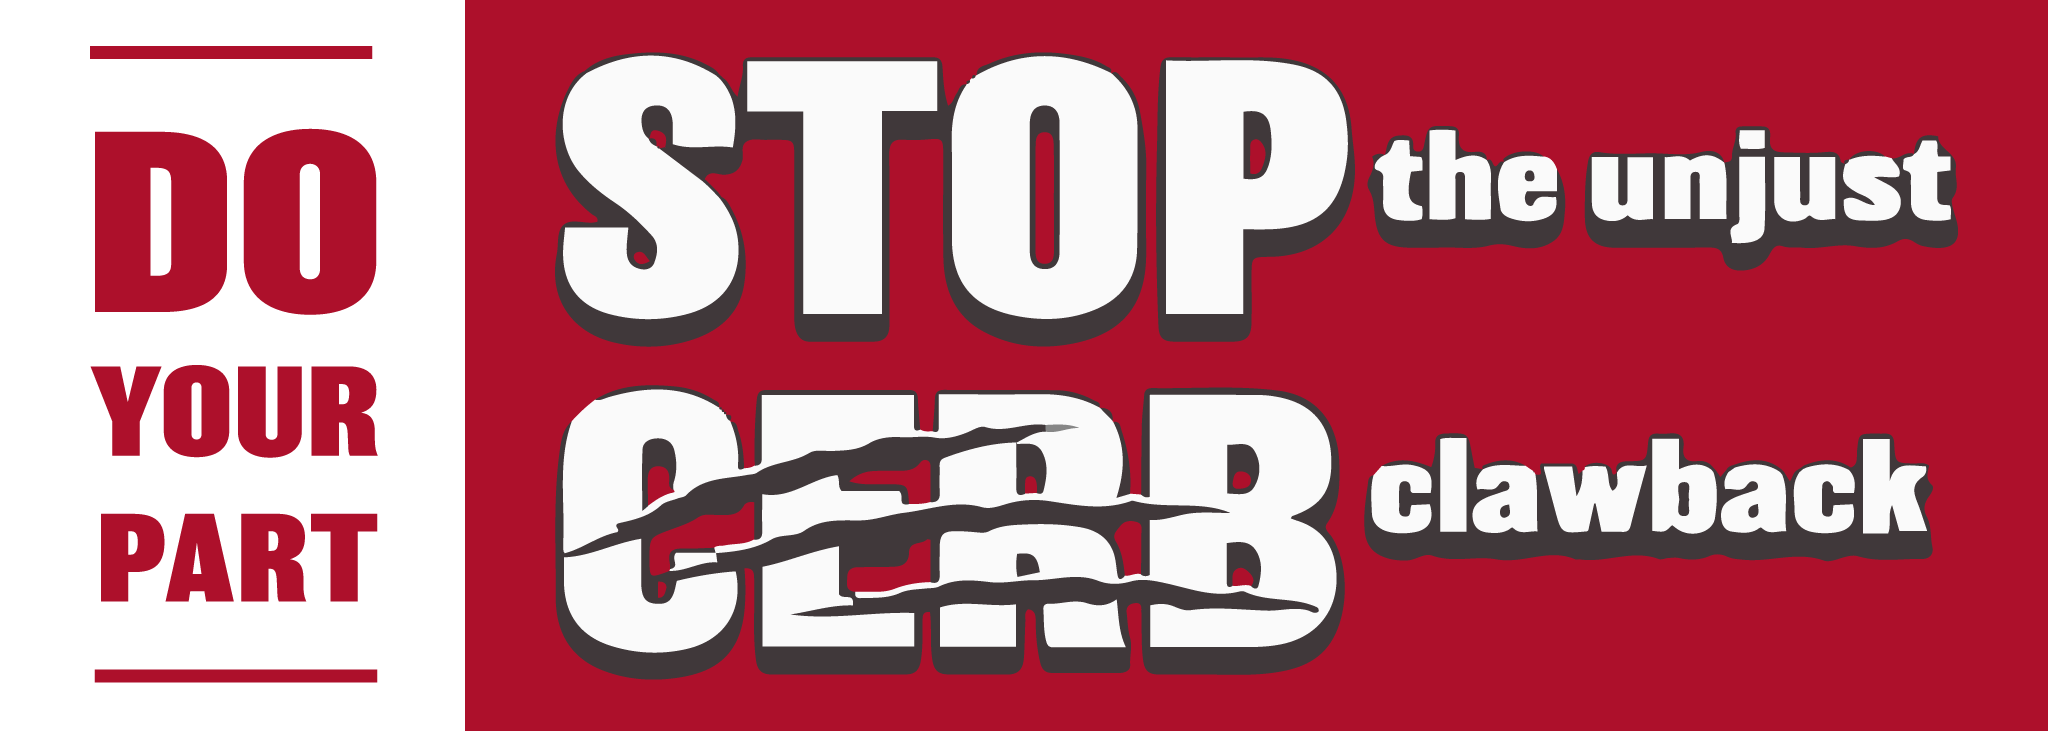 Stop the CERB Clawback banner illustration